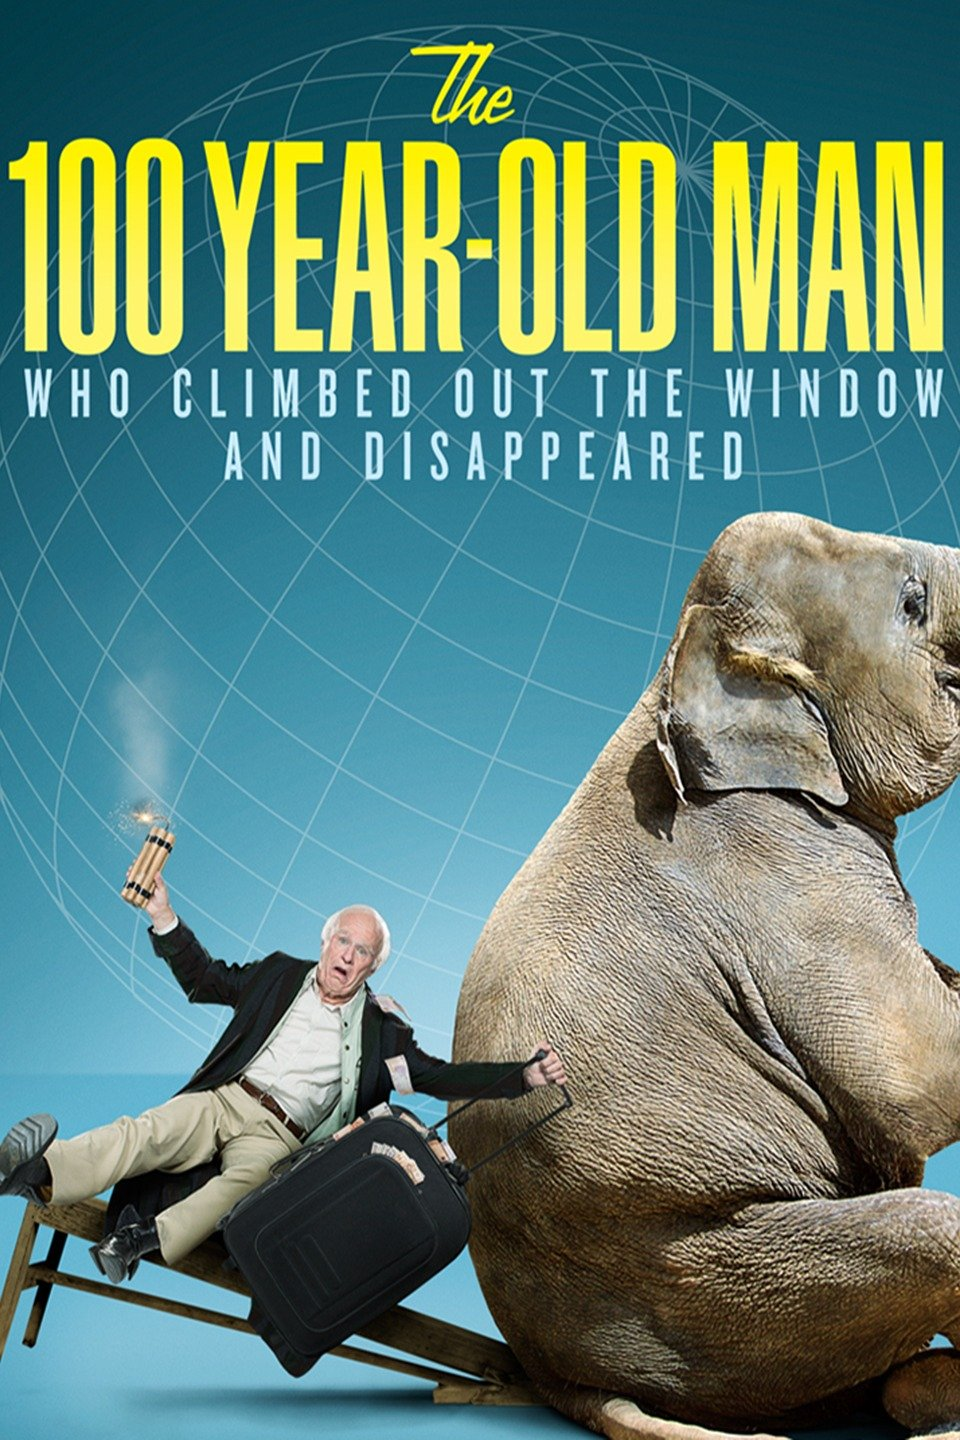 The Hundred-Year-Old Man Who Climbed Out the Window and Disappeared (2013)